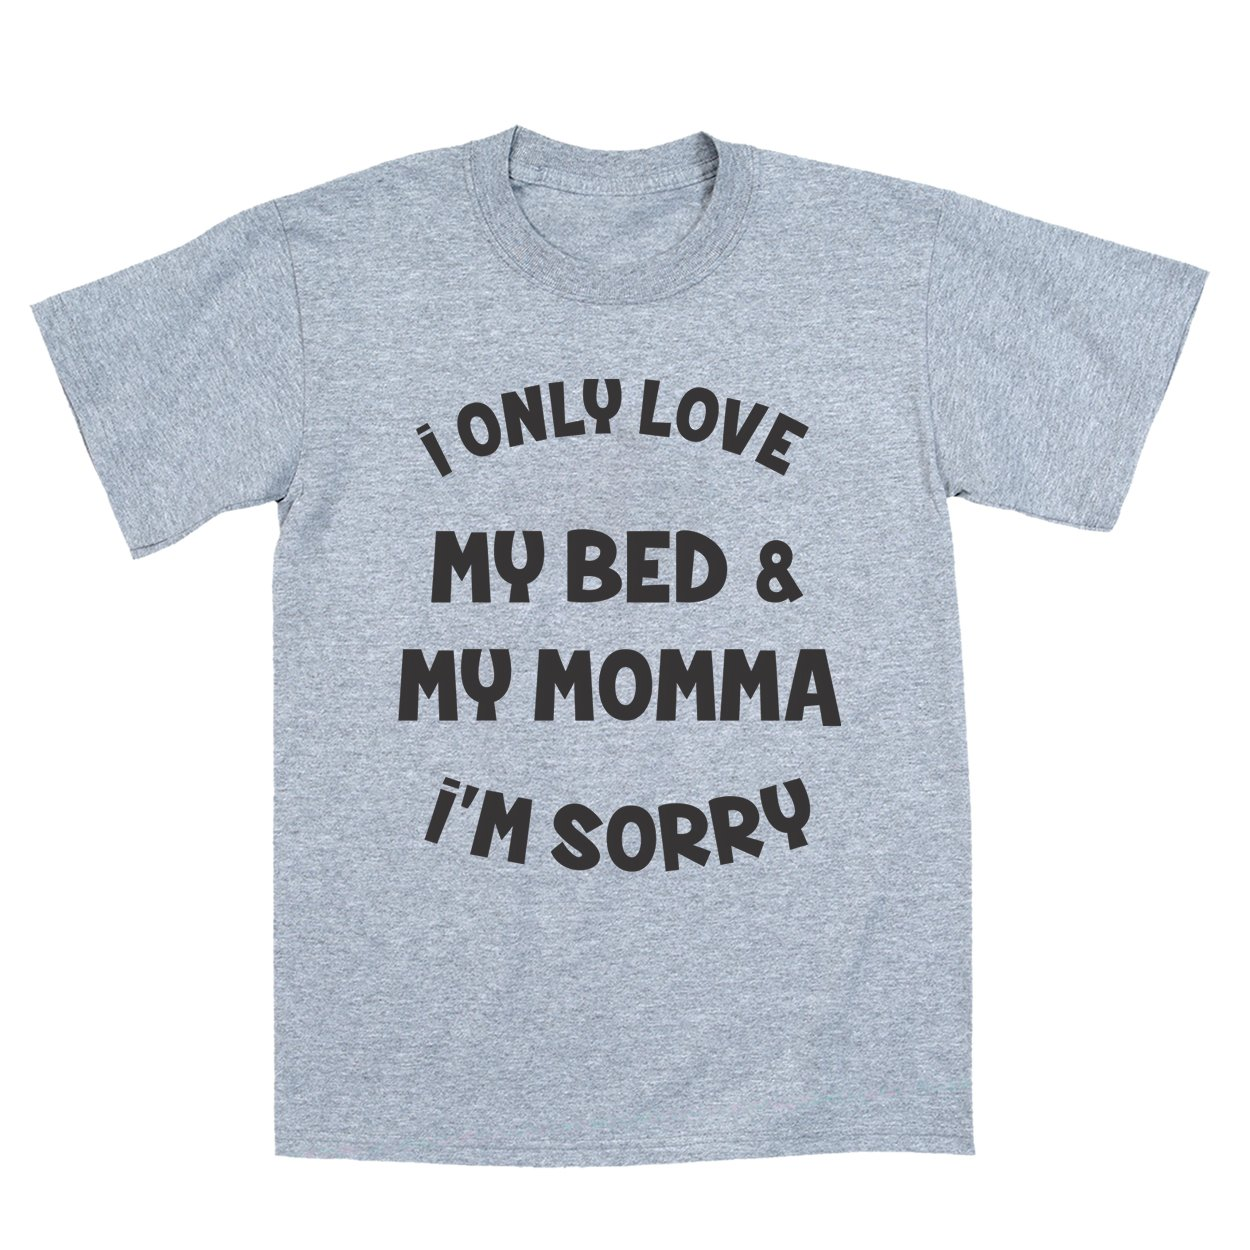 I Only Love My Bed and My Momma Toddler Shirt 4T Gray by Funny Threads Outlet